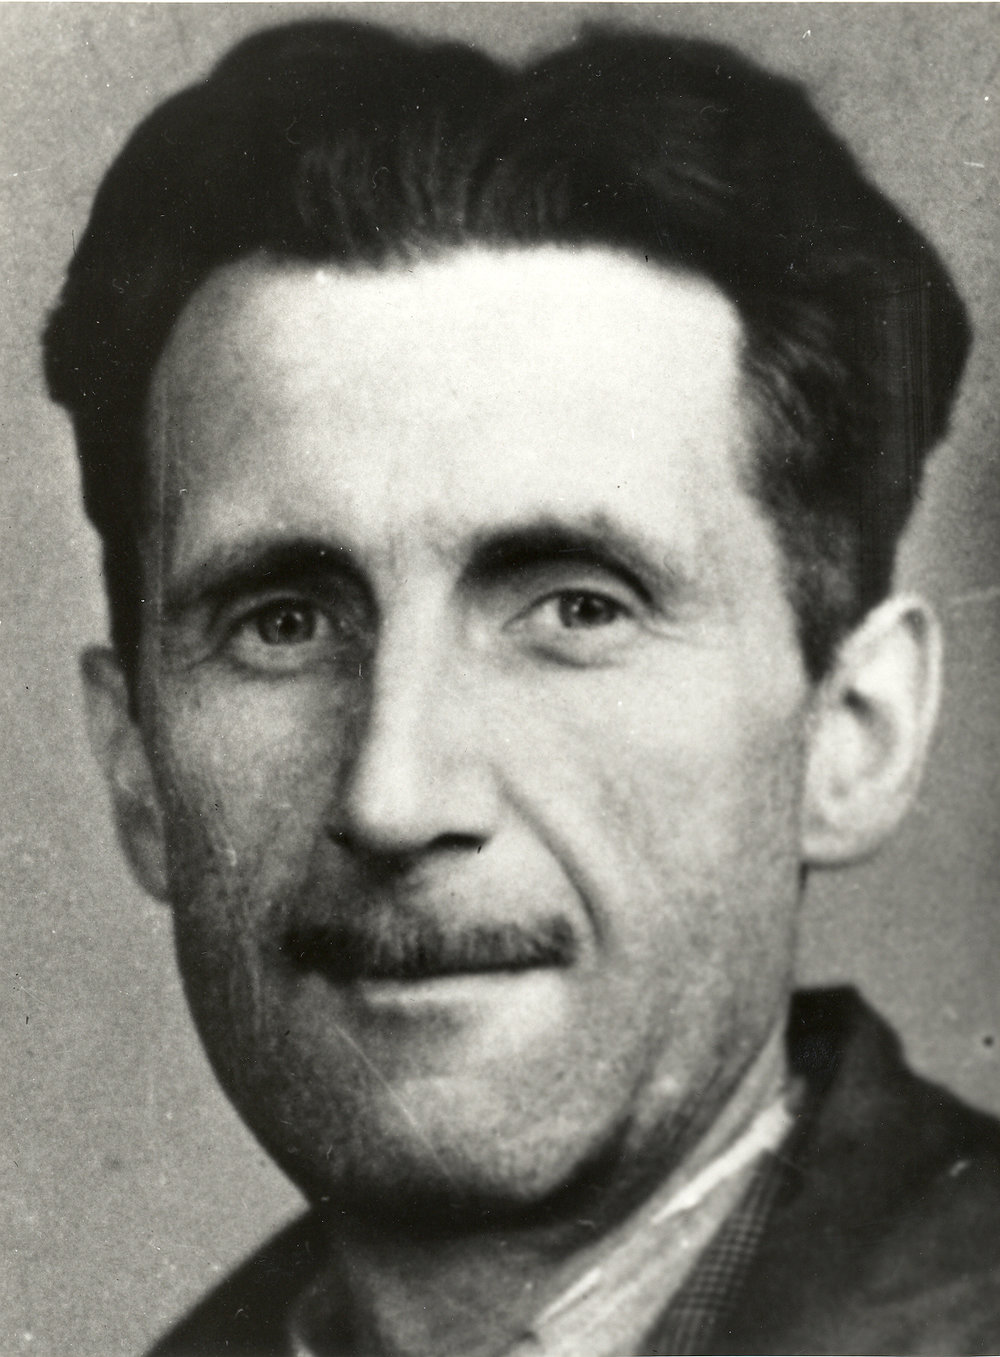 113 George_Orwell_press_photo.jpg